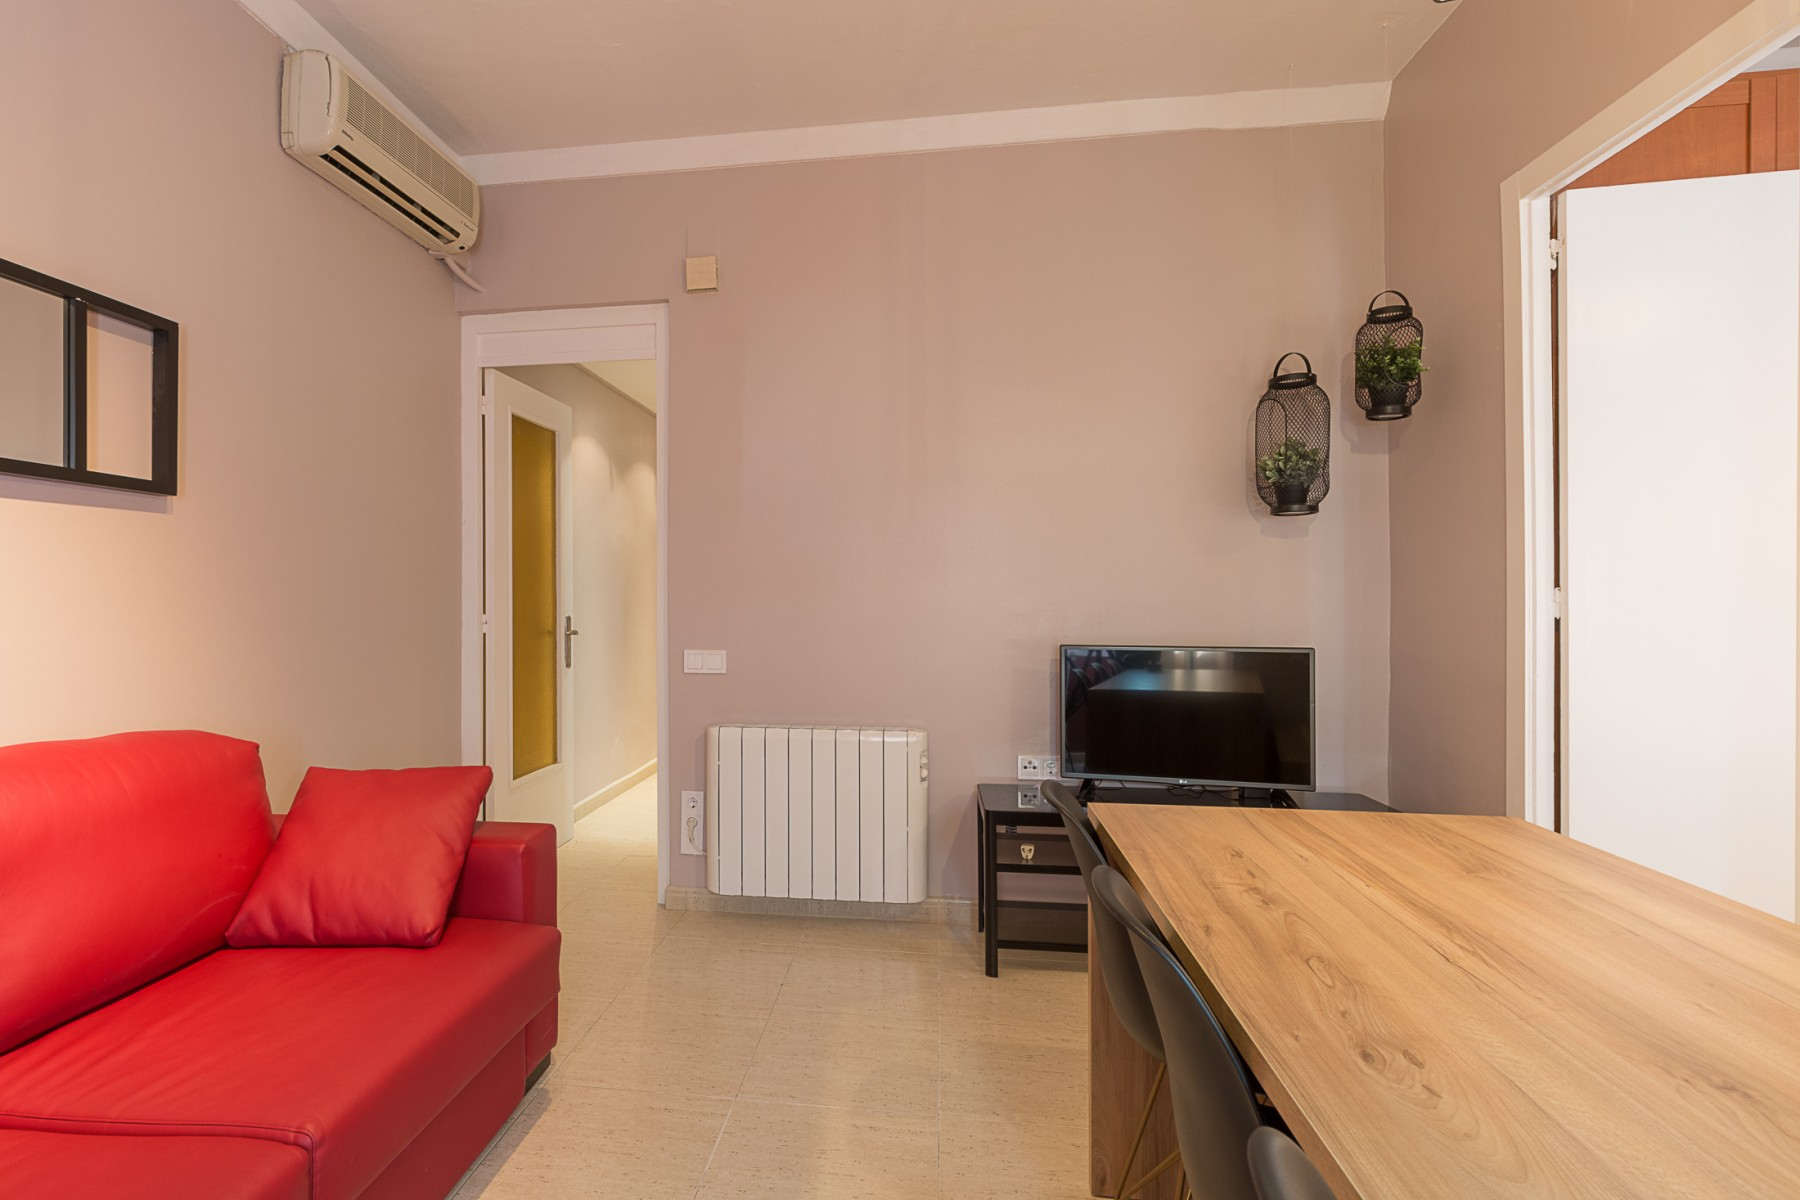 PLAZA ESPAÑA, comfy, 3 bedrooms